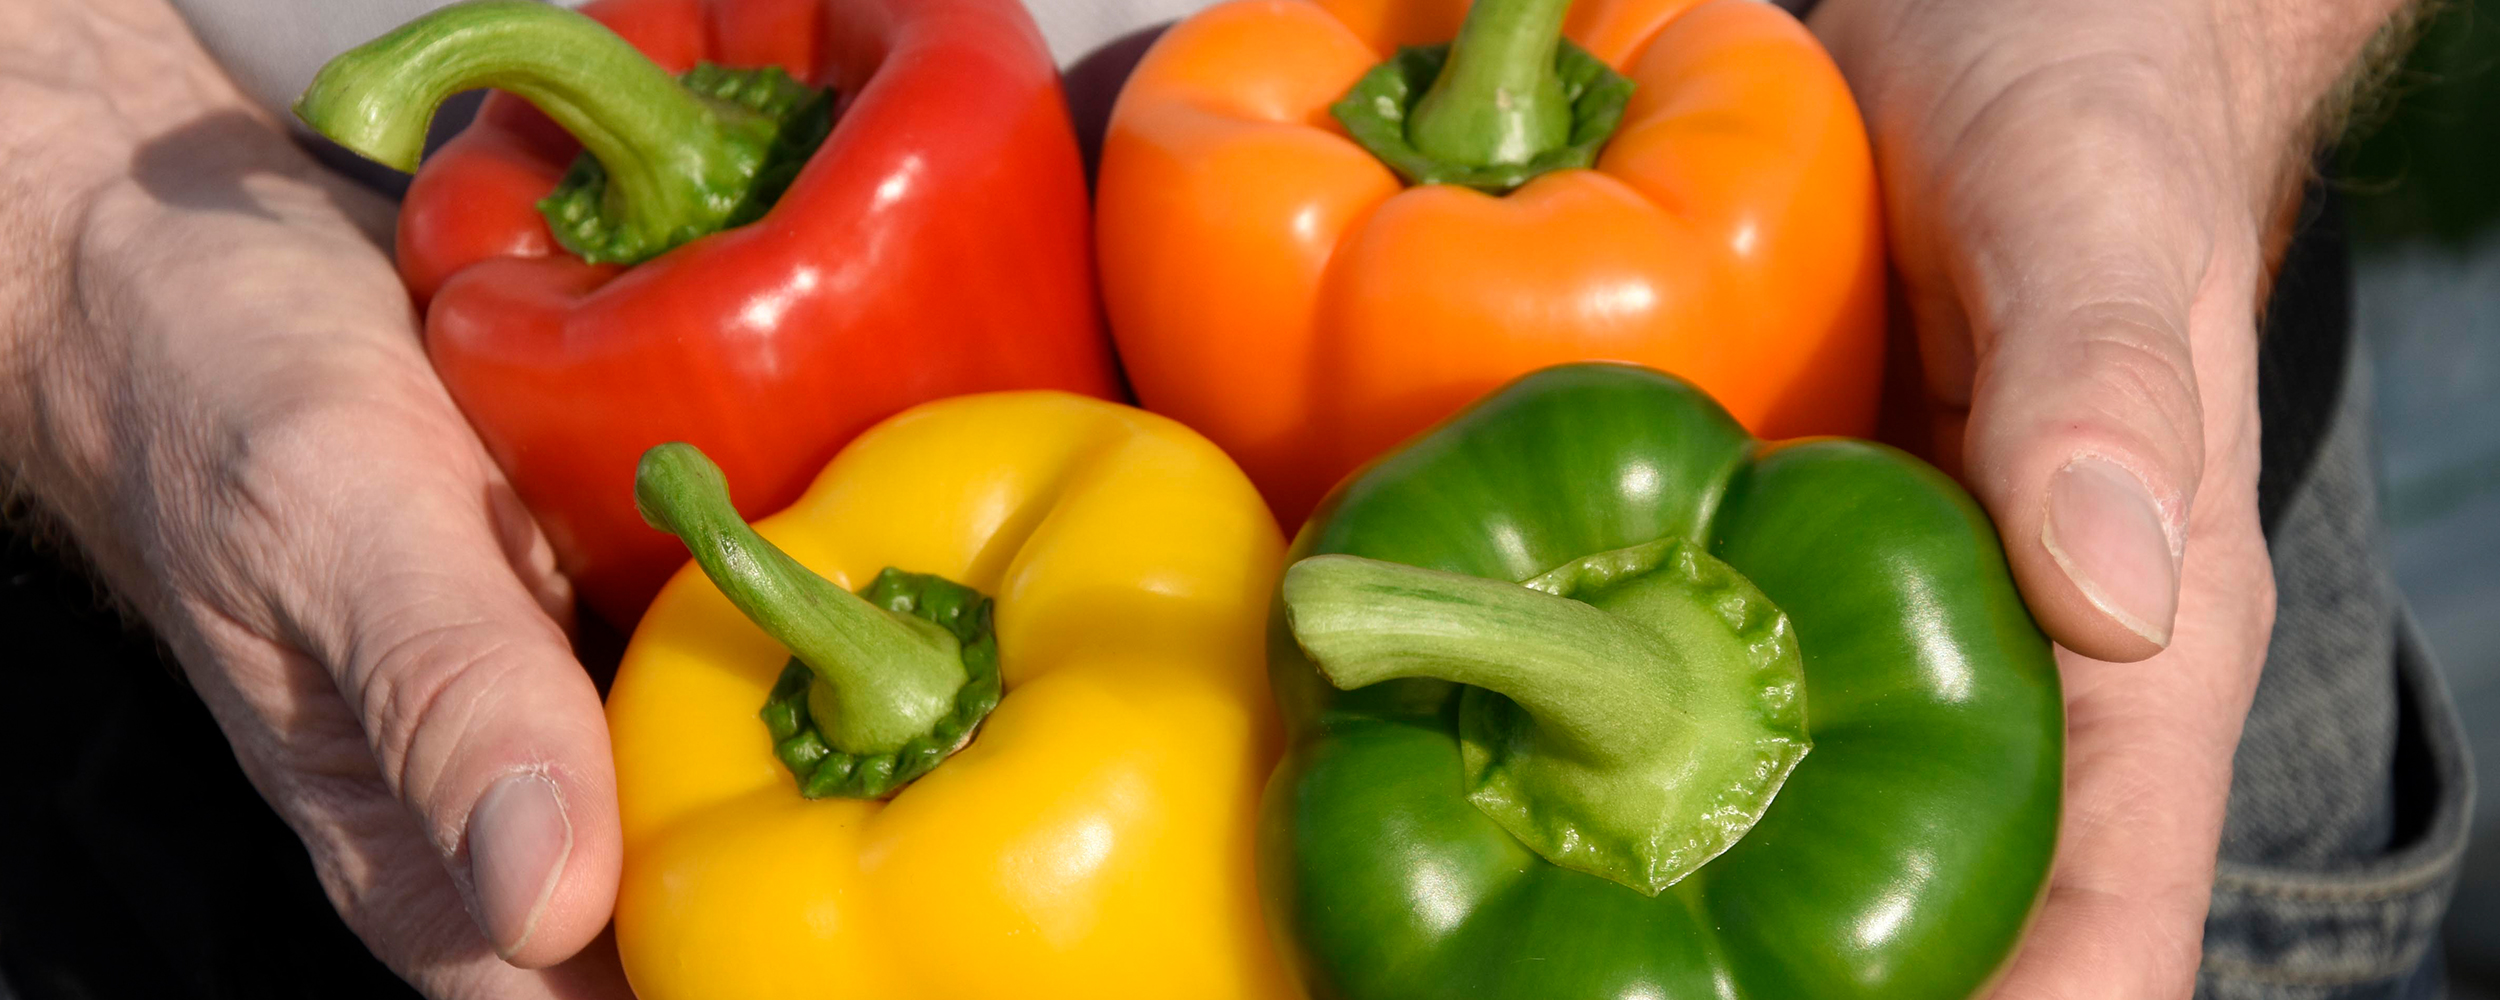 Red, yellow, green and orange peppers being held in two hands.